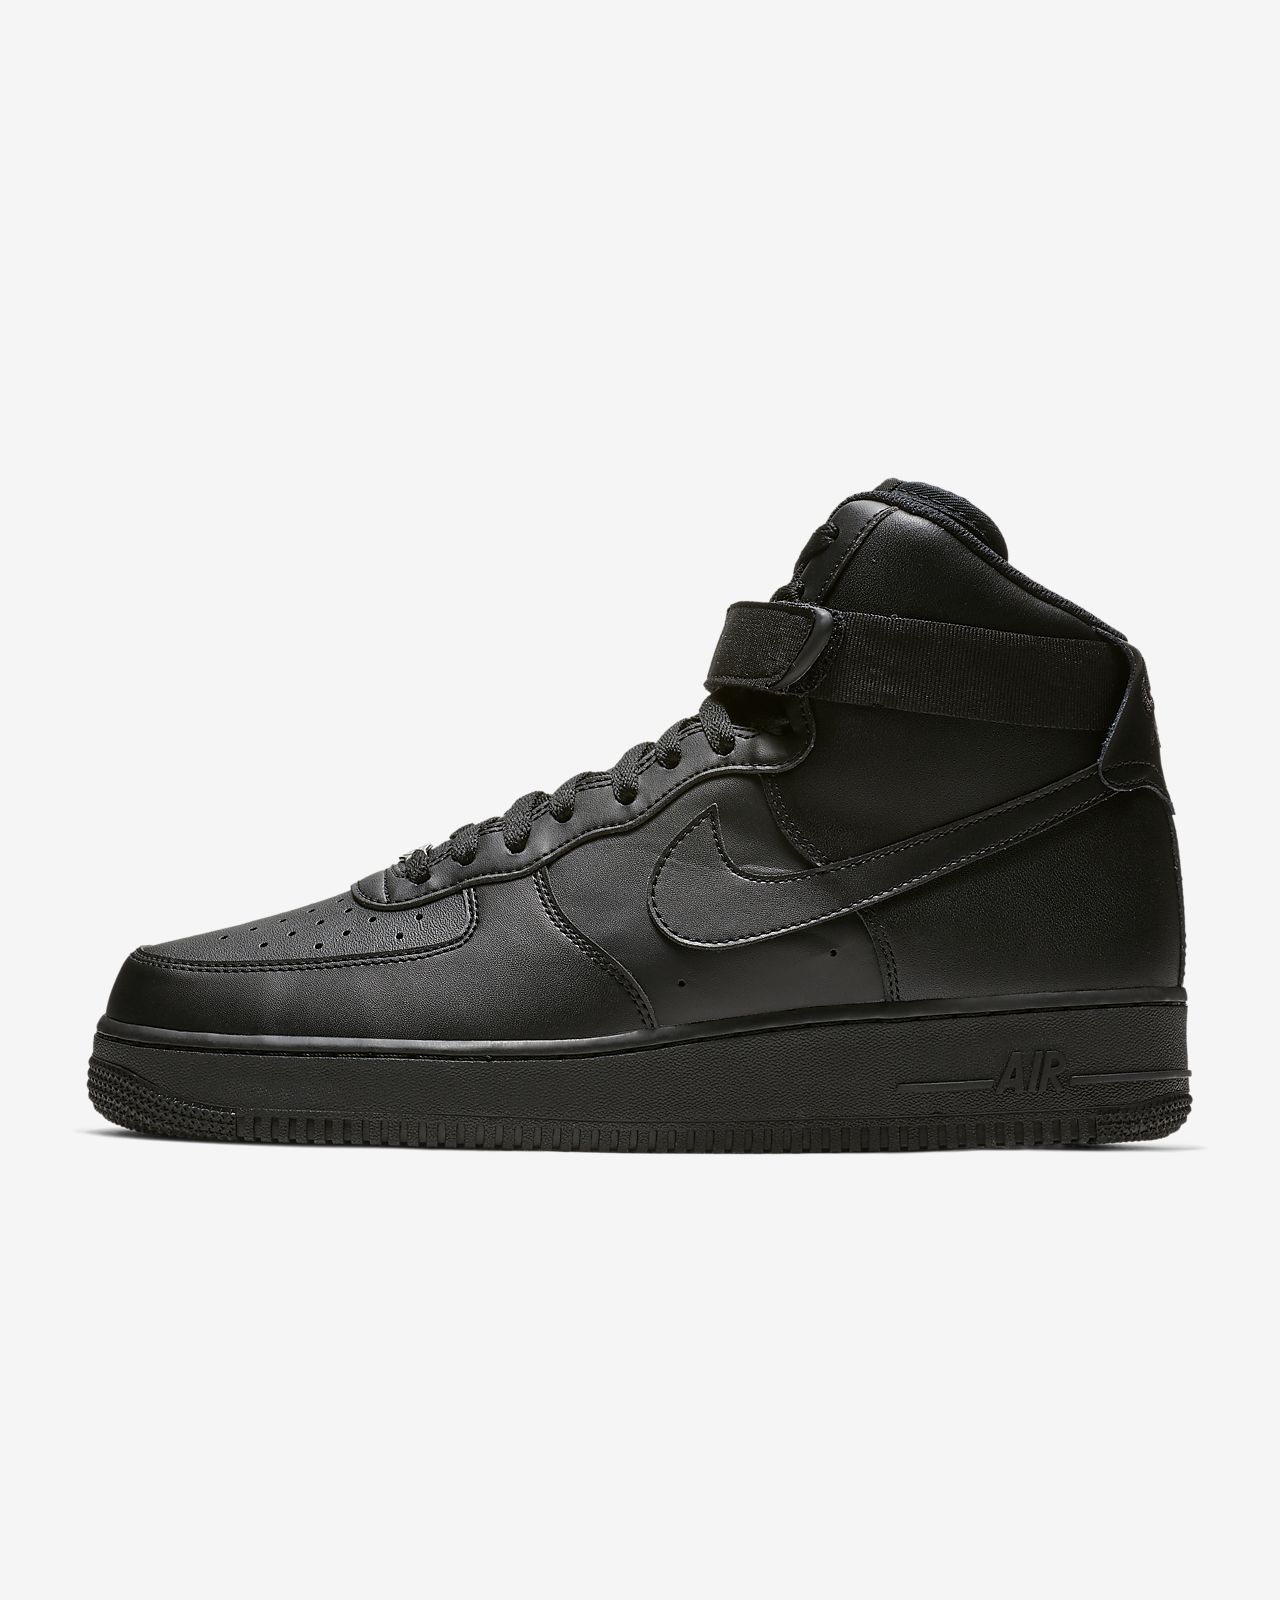 99b13c34b172 Nike Air Force 1 High 07 Men s Shoe. Nike.com